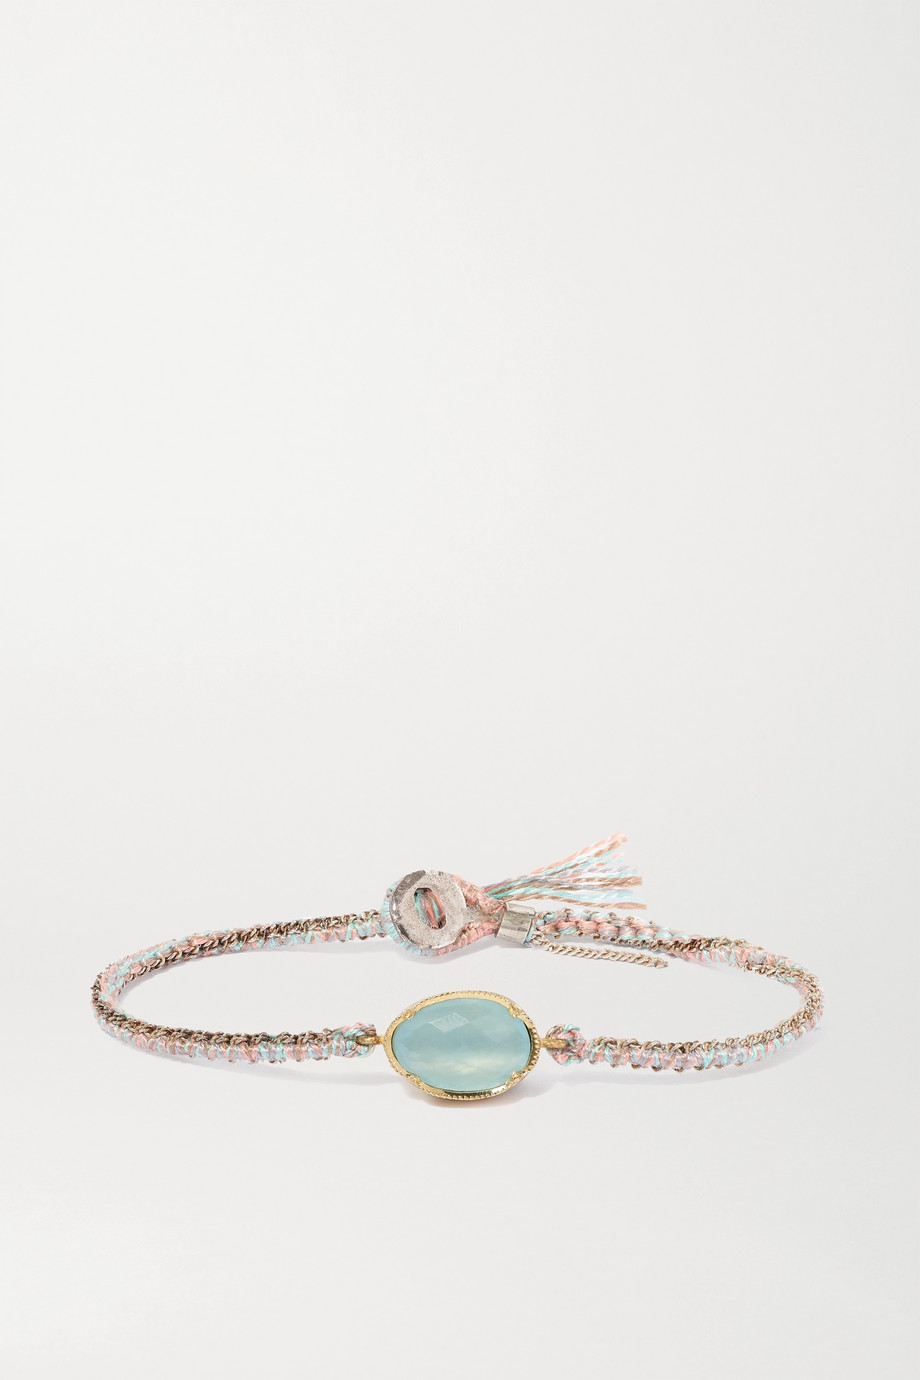 Brooke Gregson Orbit 14-karat gold, sterling silver, silk and aquamarine bracelet